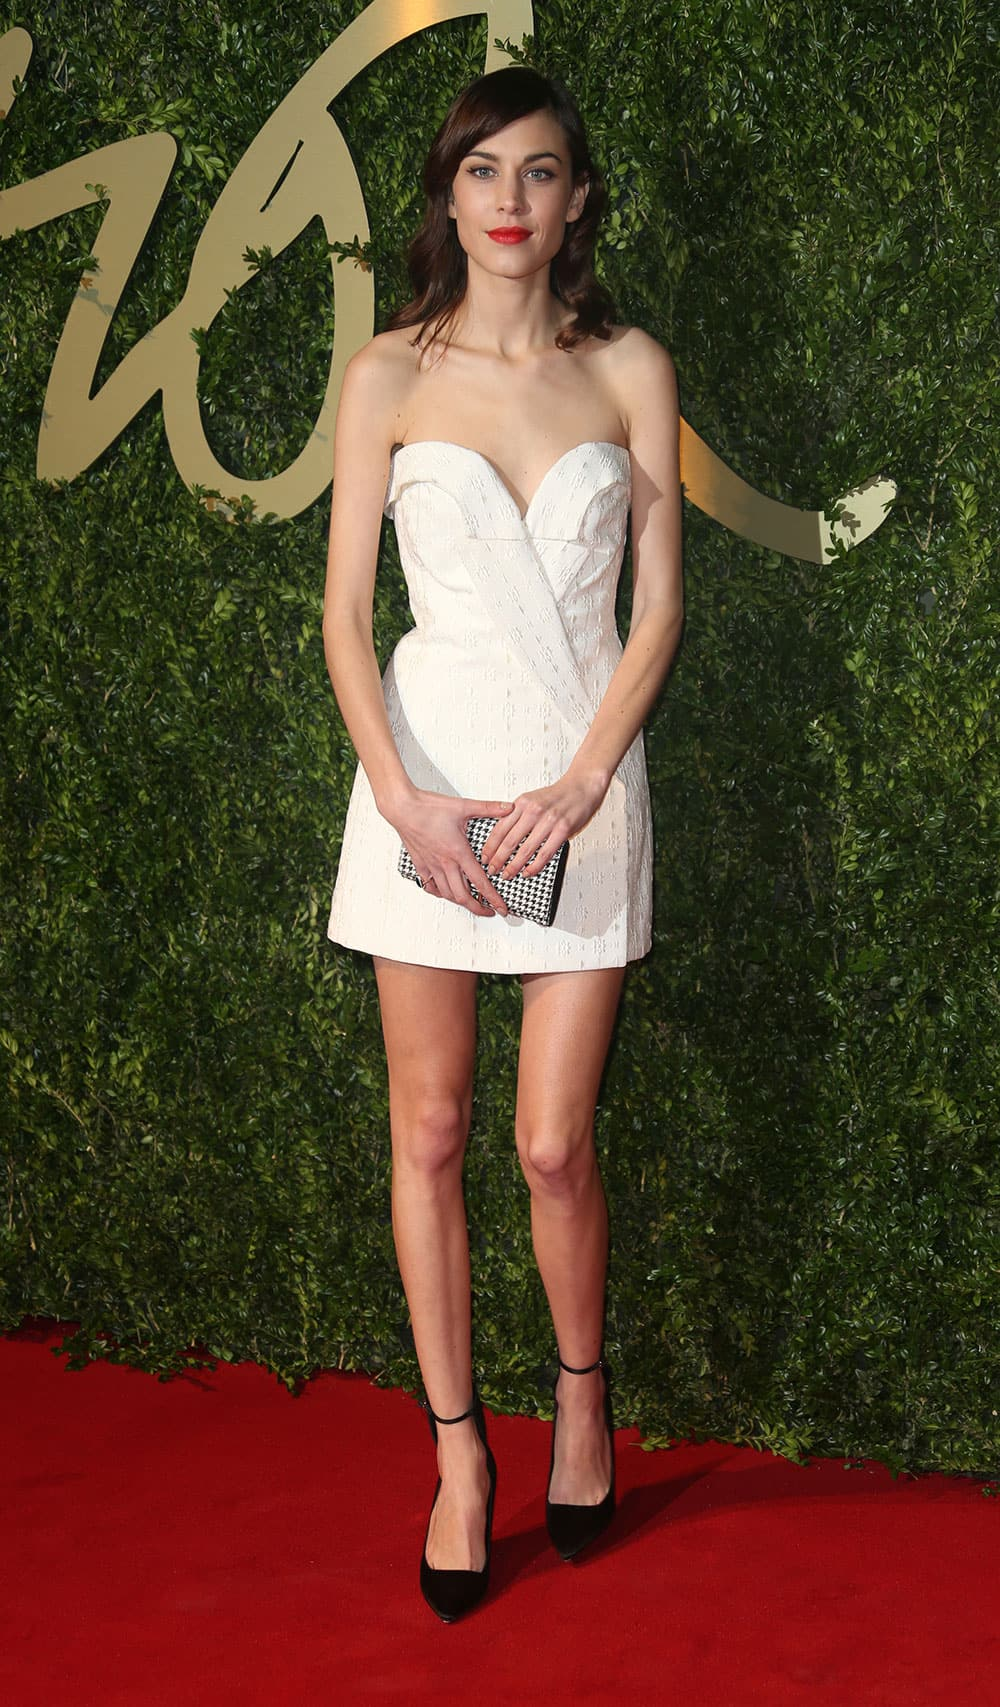 British model and presenter Alexa Chung poses for photographers as she arrives for the London Coliseum for the 2013 British Fashion Awards, in central London.